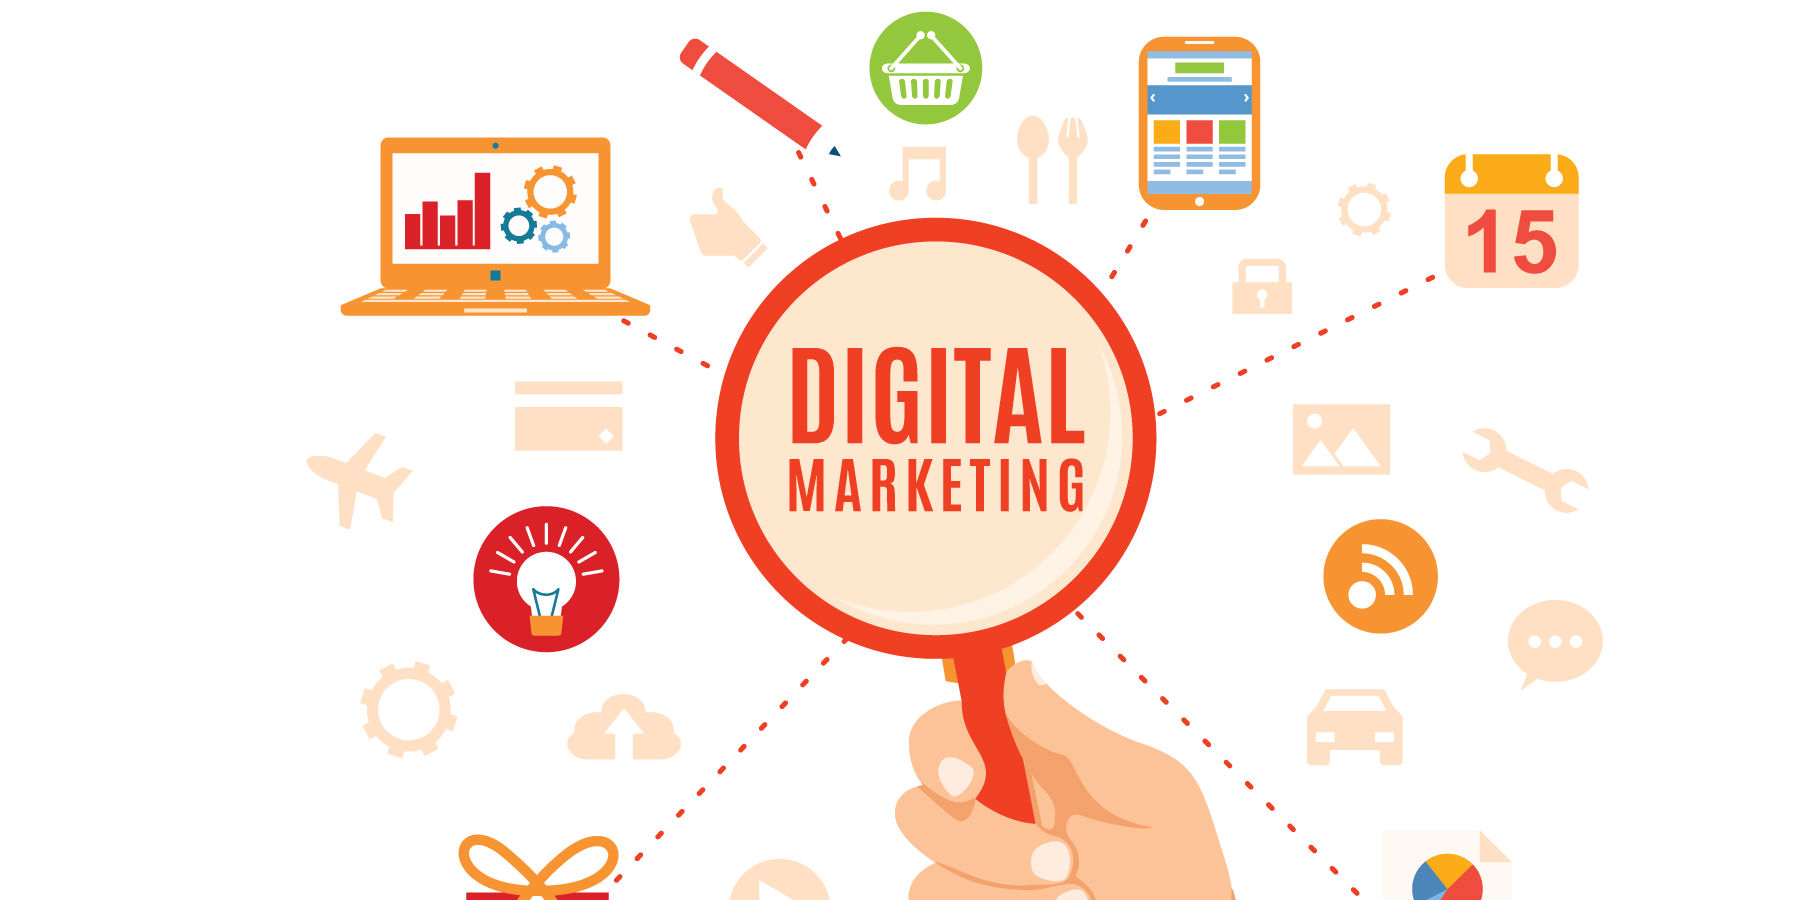 5 Reasons Digital Marketing Can Increase Your Business Sales